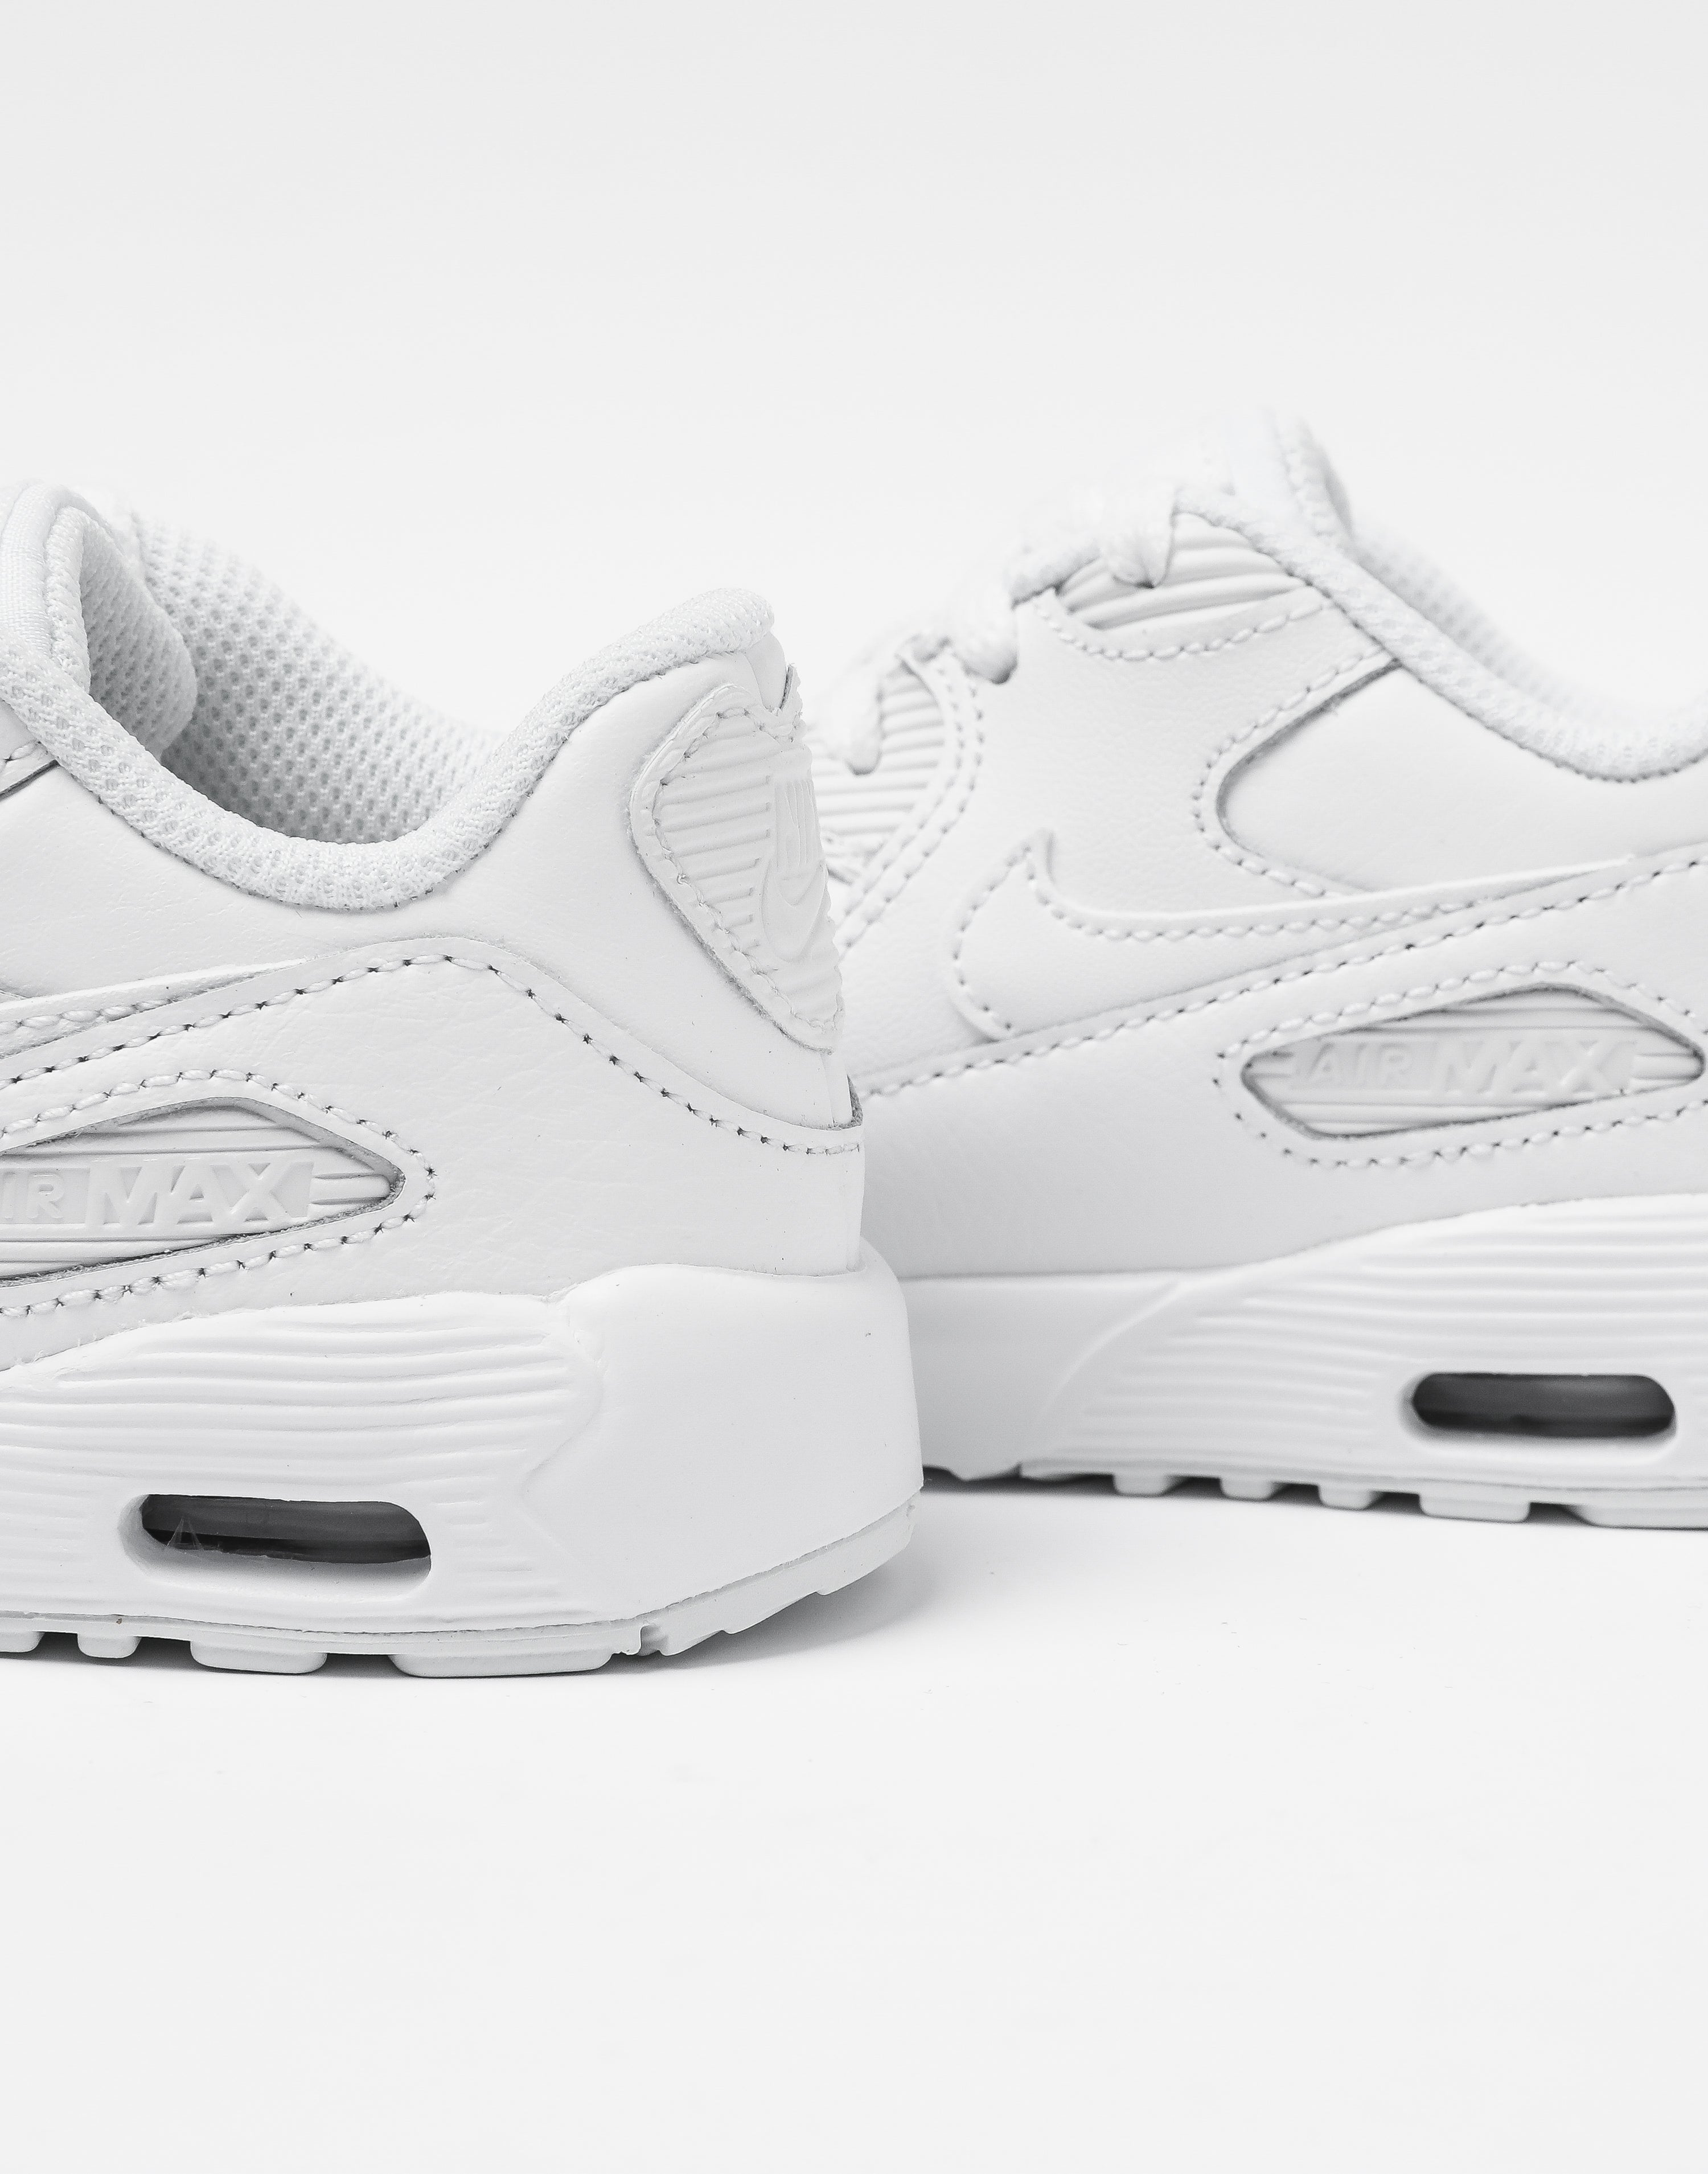 Women's Nike Air Max 90 LUX SIZE 7